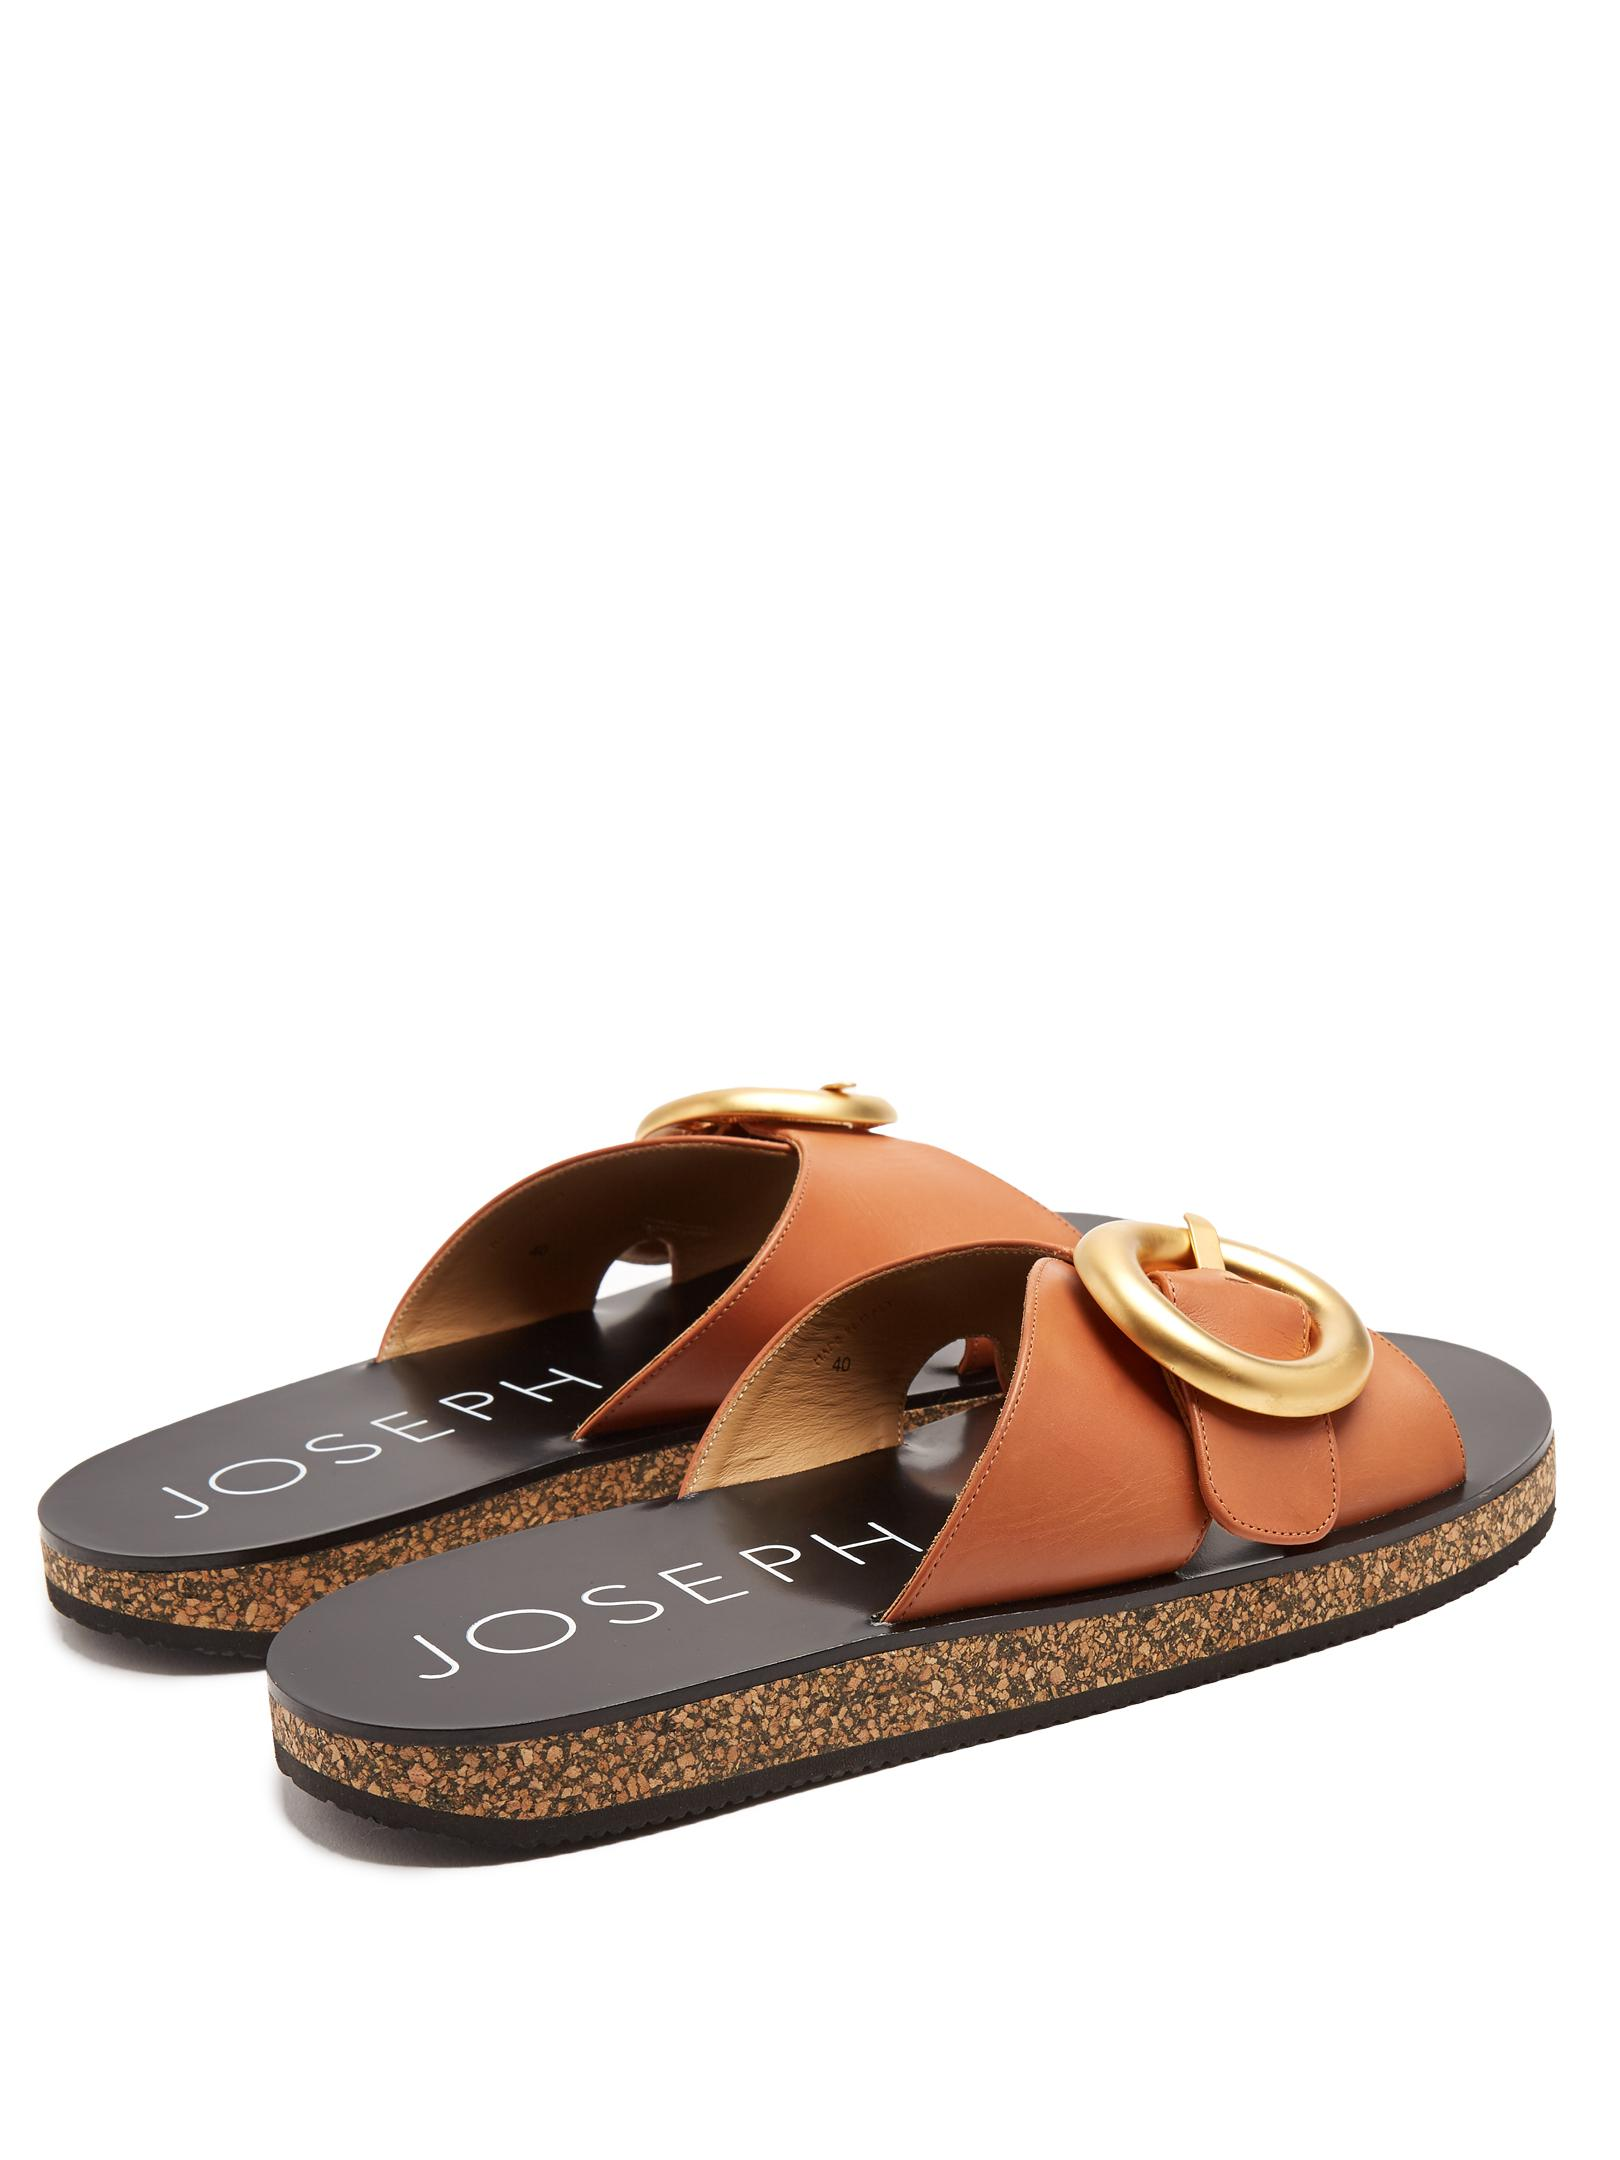 Joseph Leather slides free shipping 2014 new best seller buy cheap latest collections buy cheap classic amazing price sale online R4OfSrGWs1